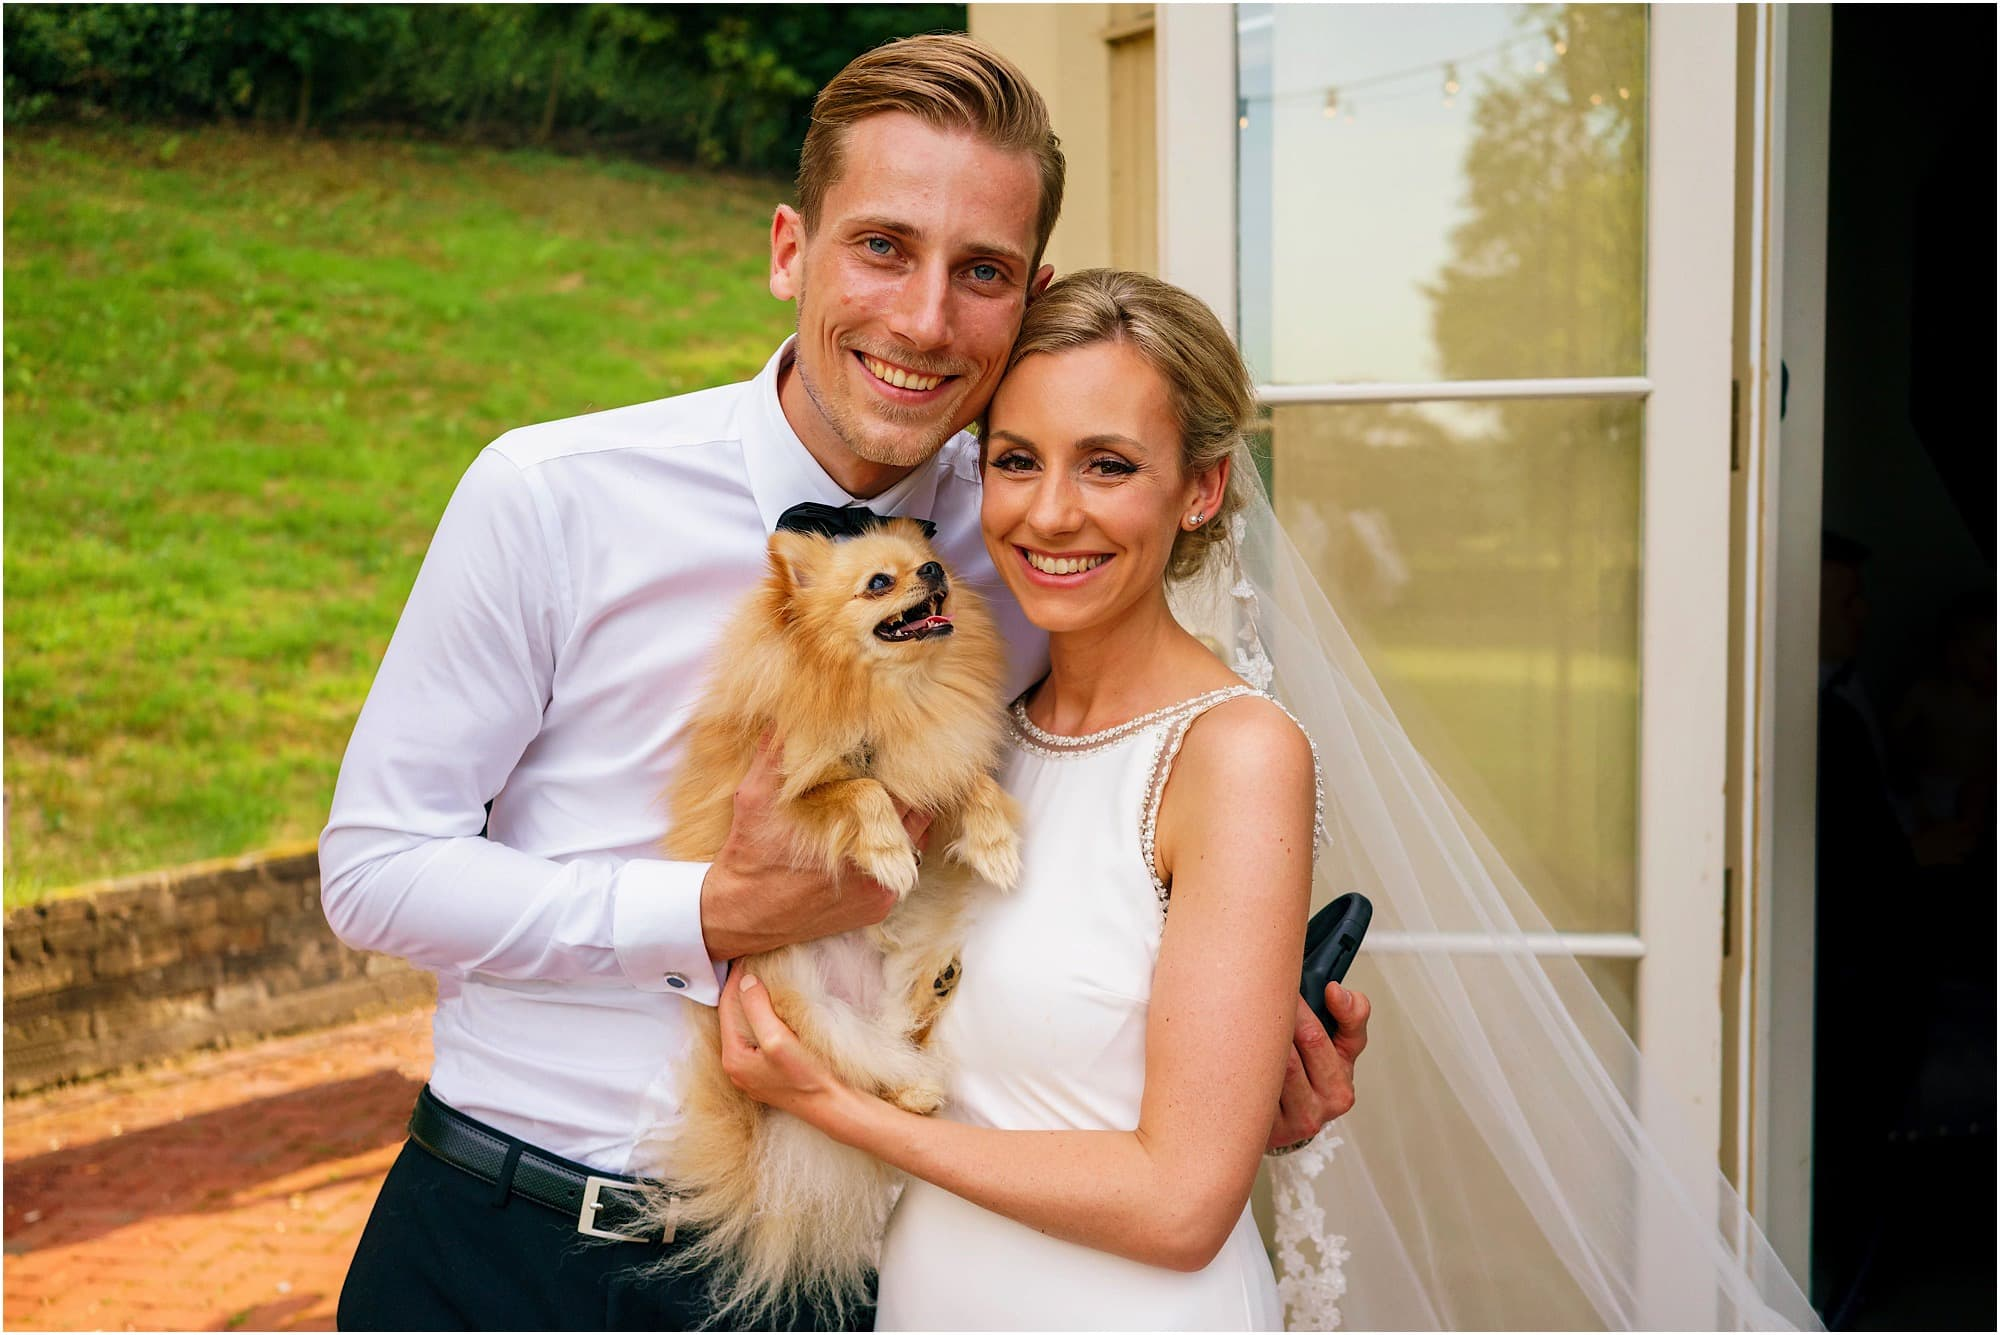 Bride and Groom with their dog photo